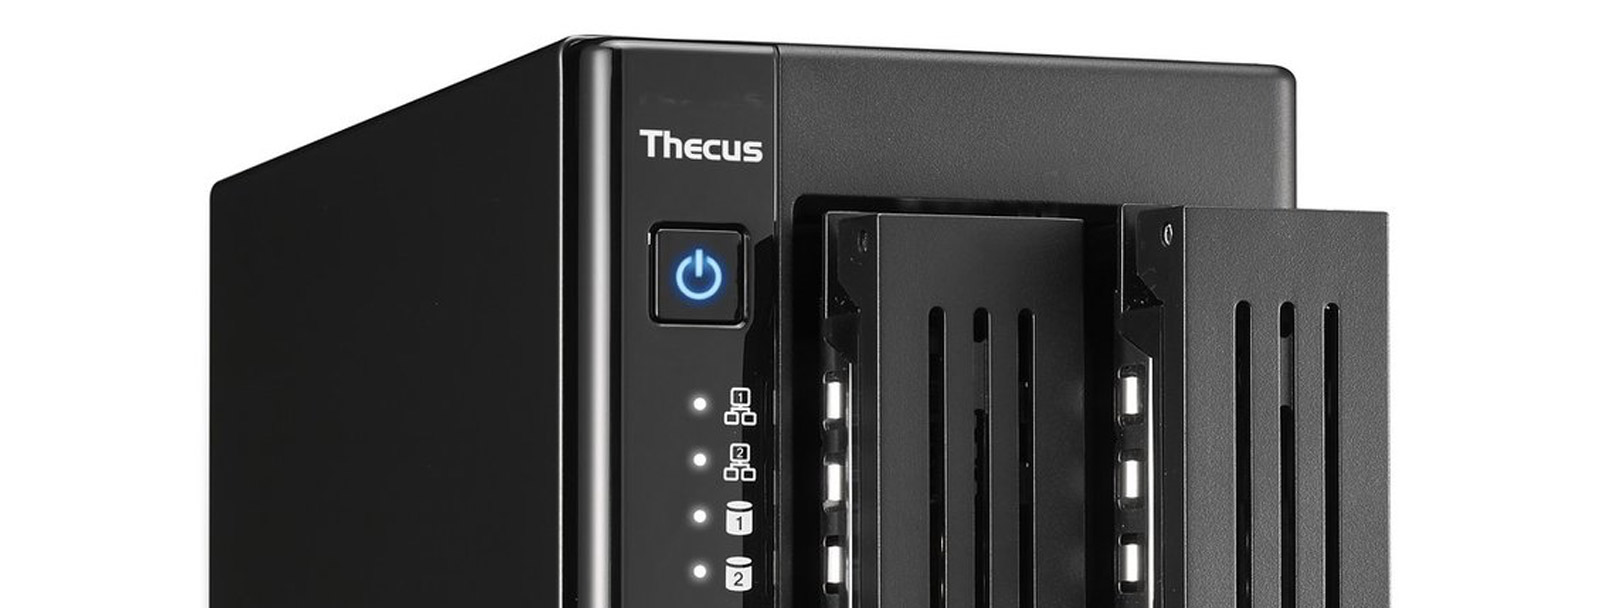 Review: Thecus N2310 Storage